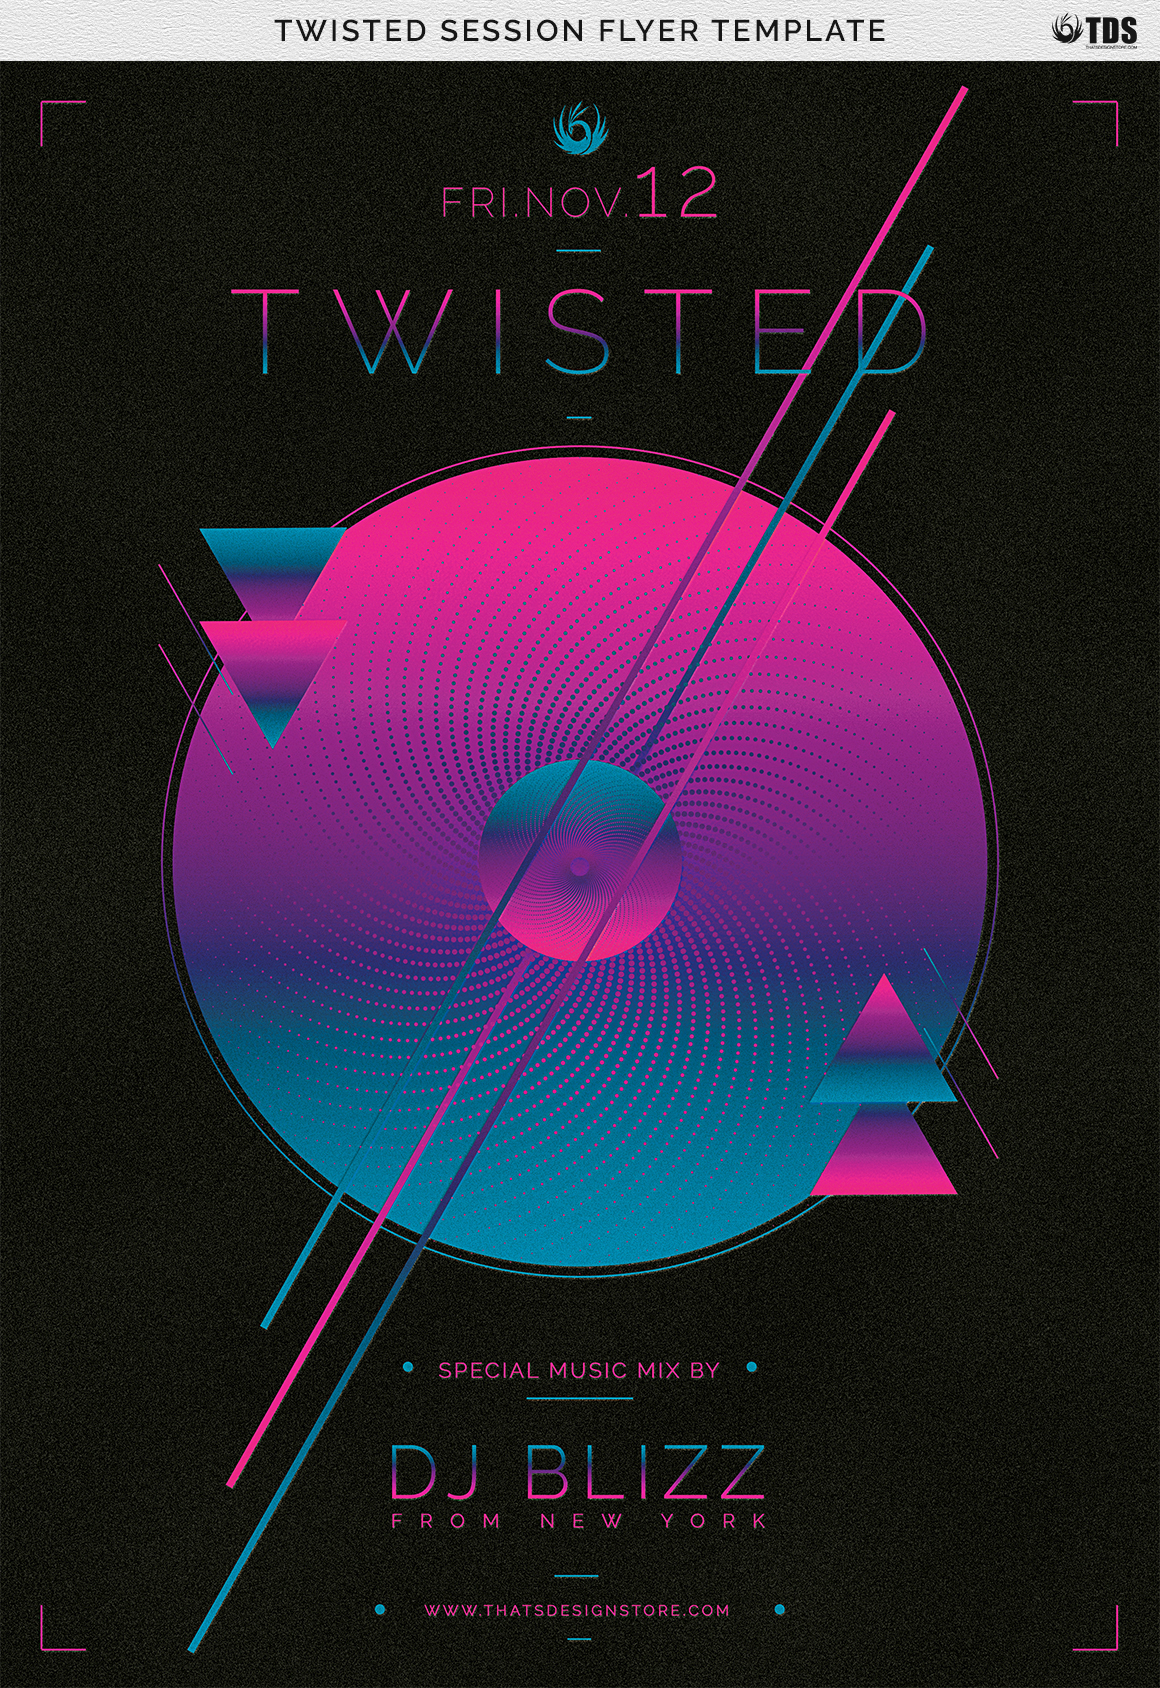 Twisted Session Flyer Template example image 10